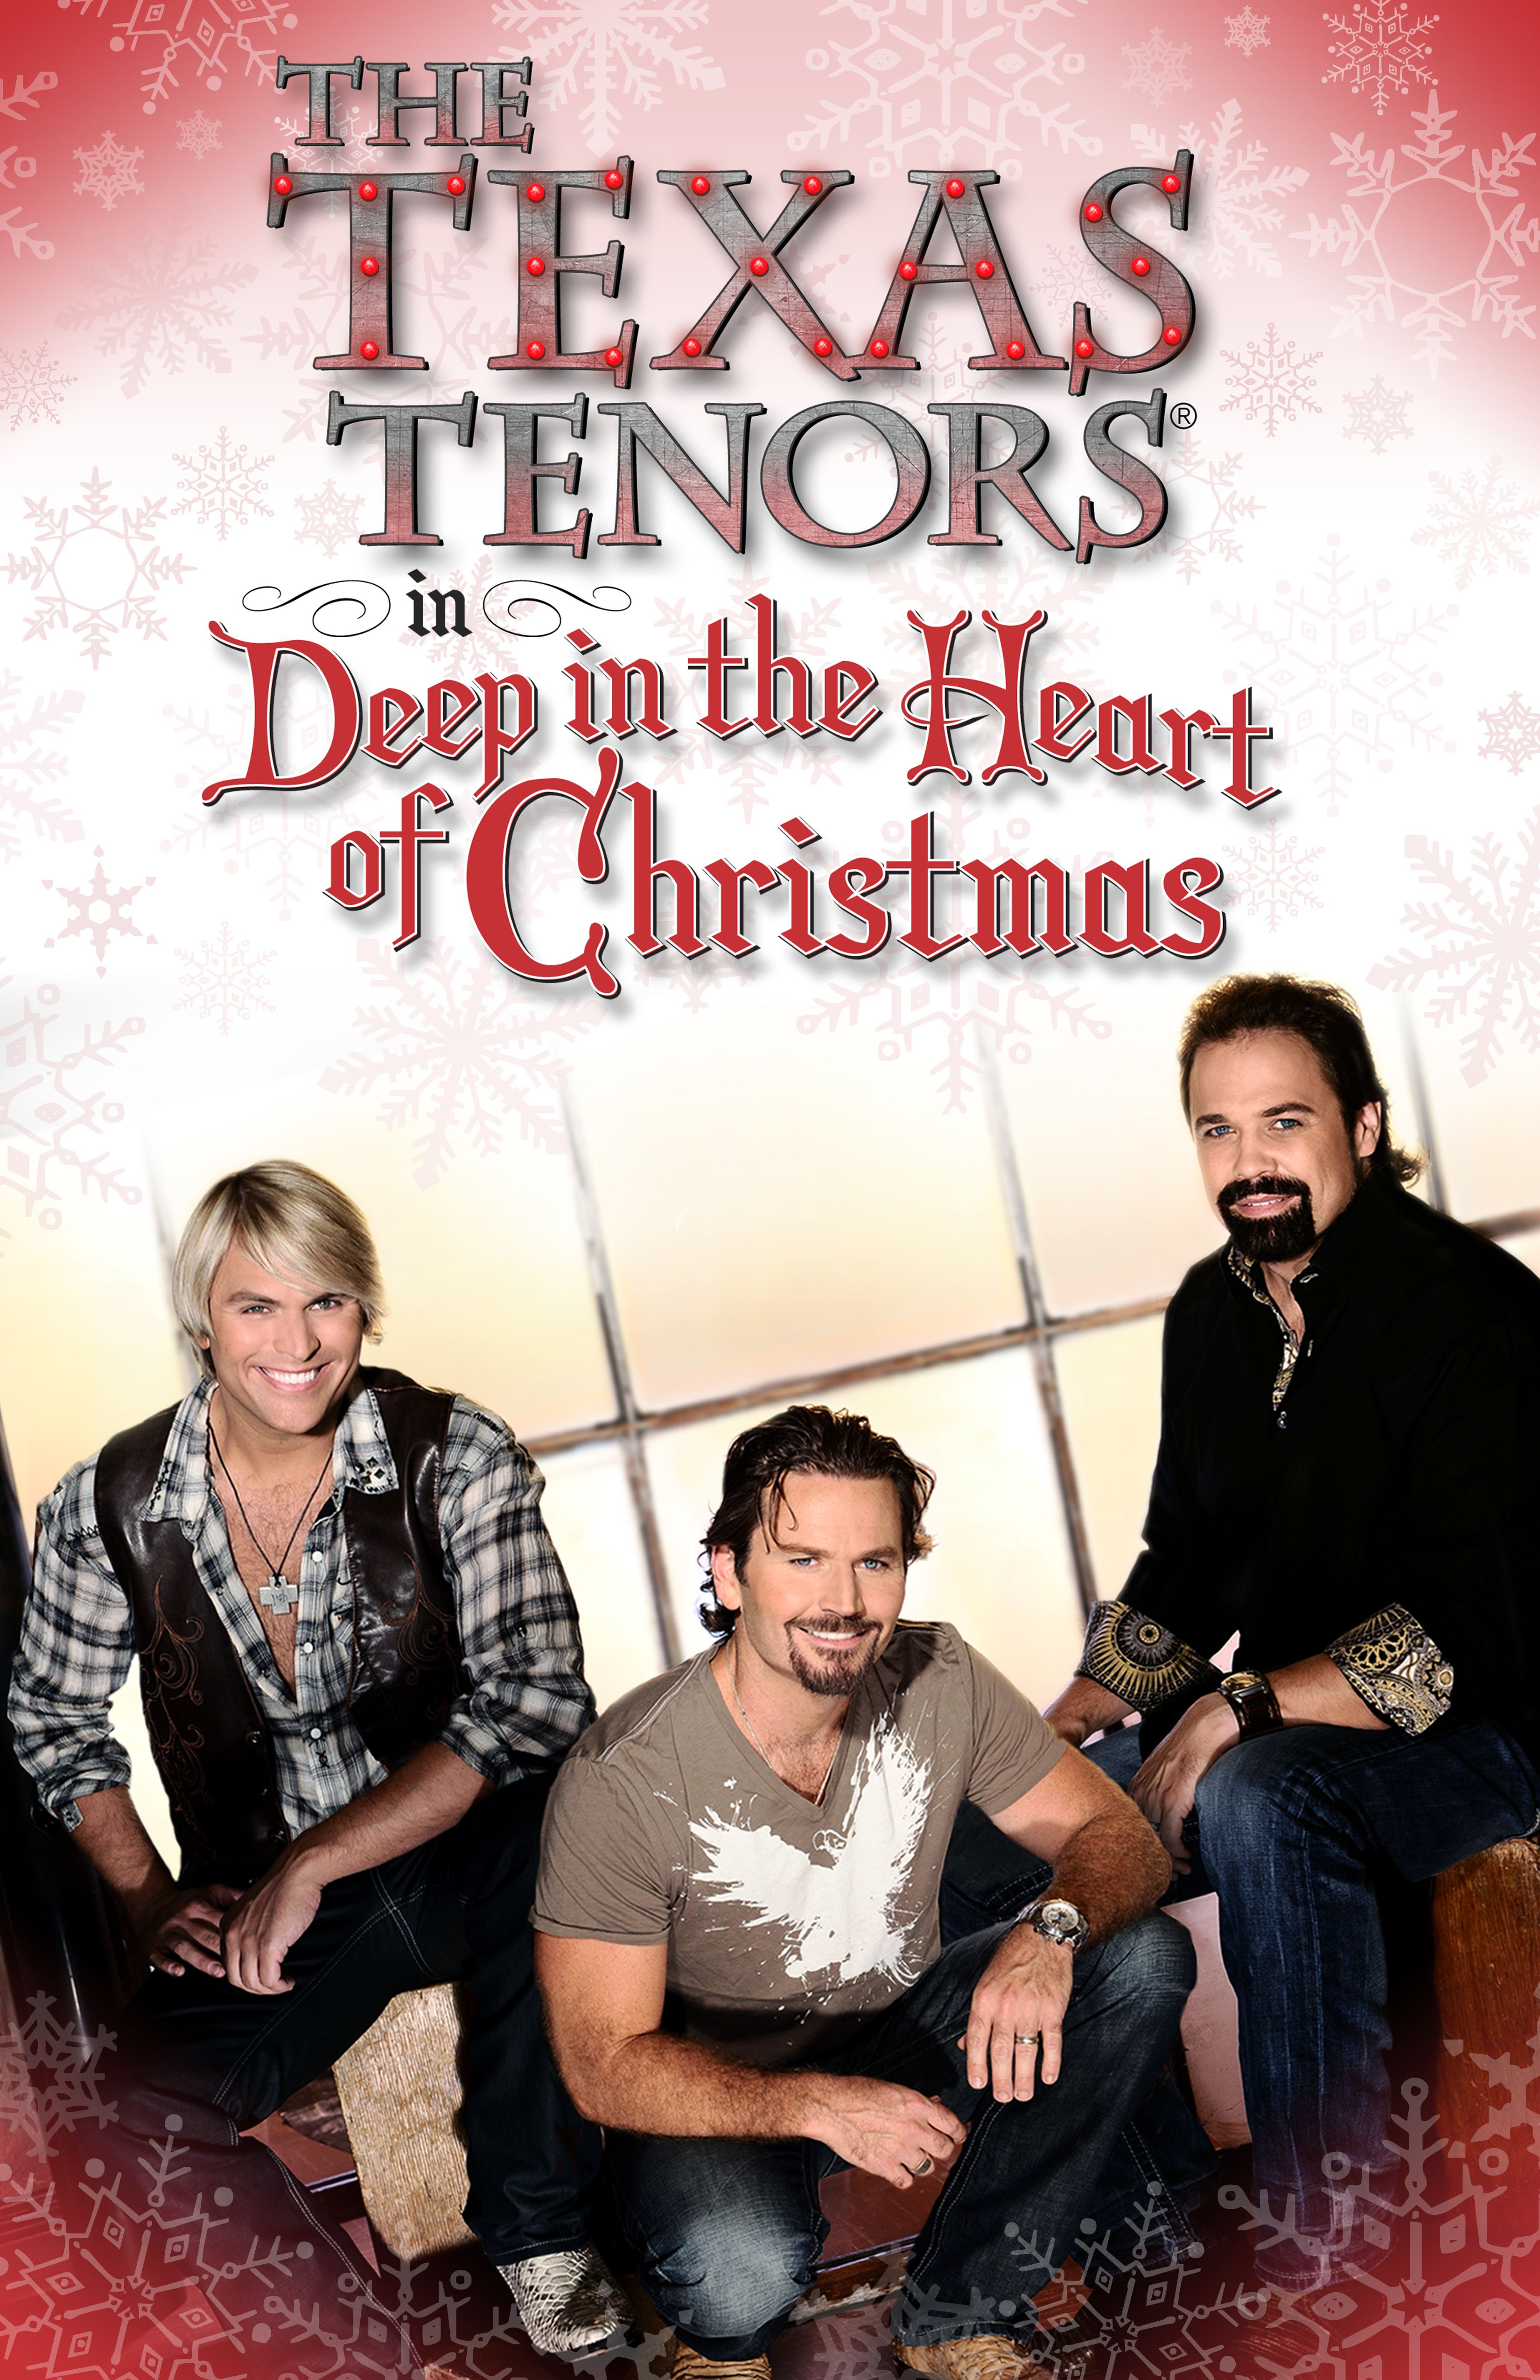 The Texas Tenors Return To Ocean City Md Thanksgiving Weekend For Their Deep In The Heart Of Christmas Concert At The Ocean City Performing Arts Center Ticke Avec Images